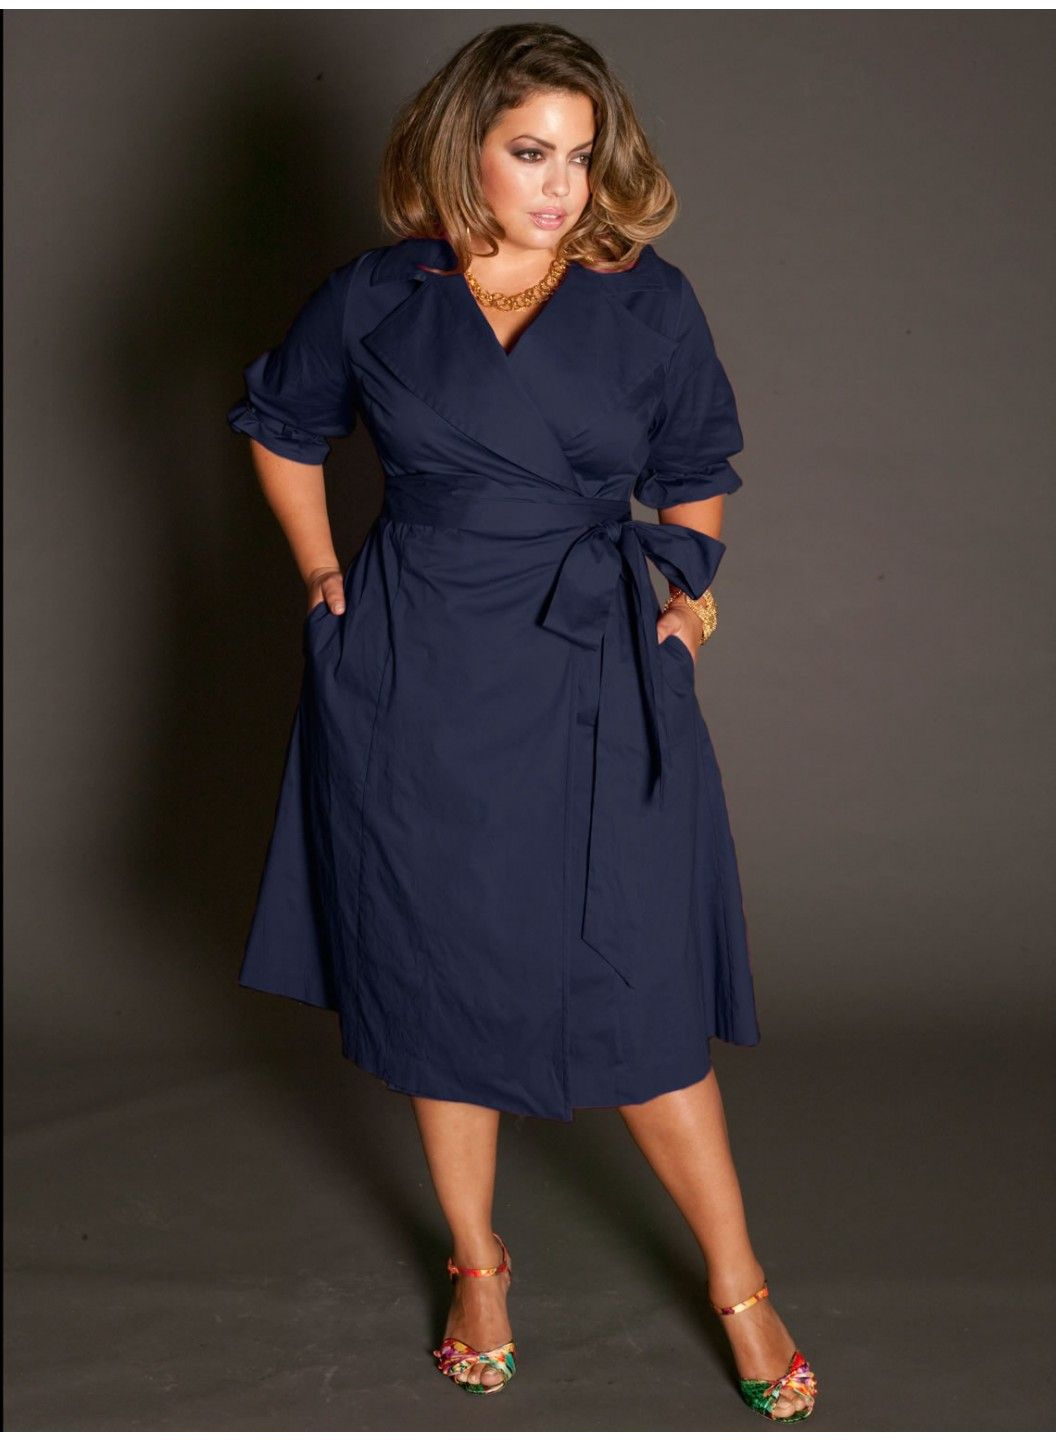 f62445b5db6 The classic wrap dress in navy blue with floral shoes. 5 beautiful navy  blue dresses for curvy women - plus size ...